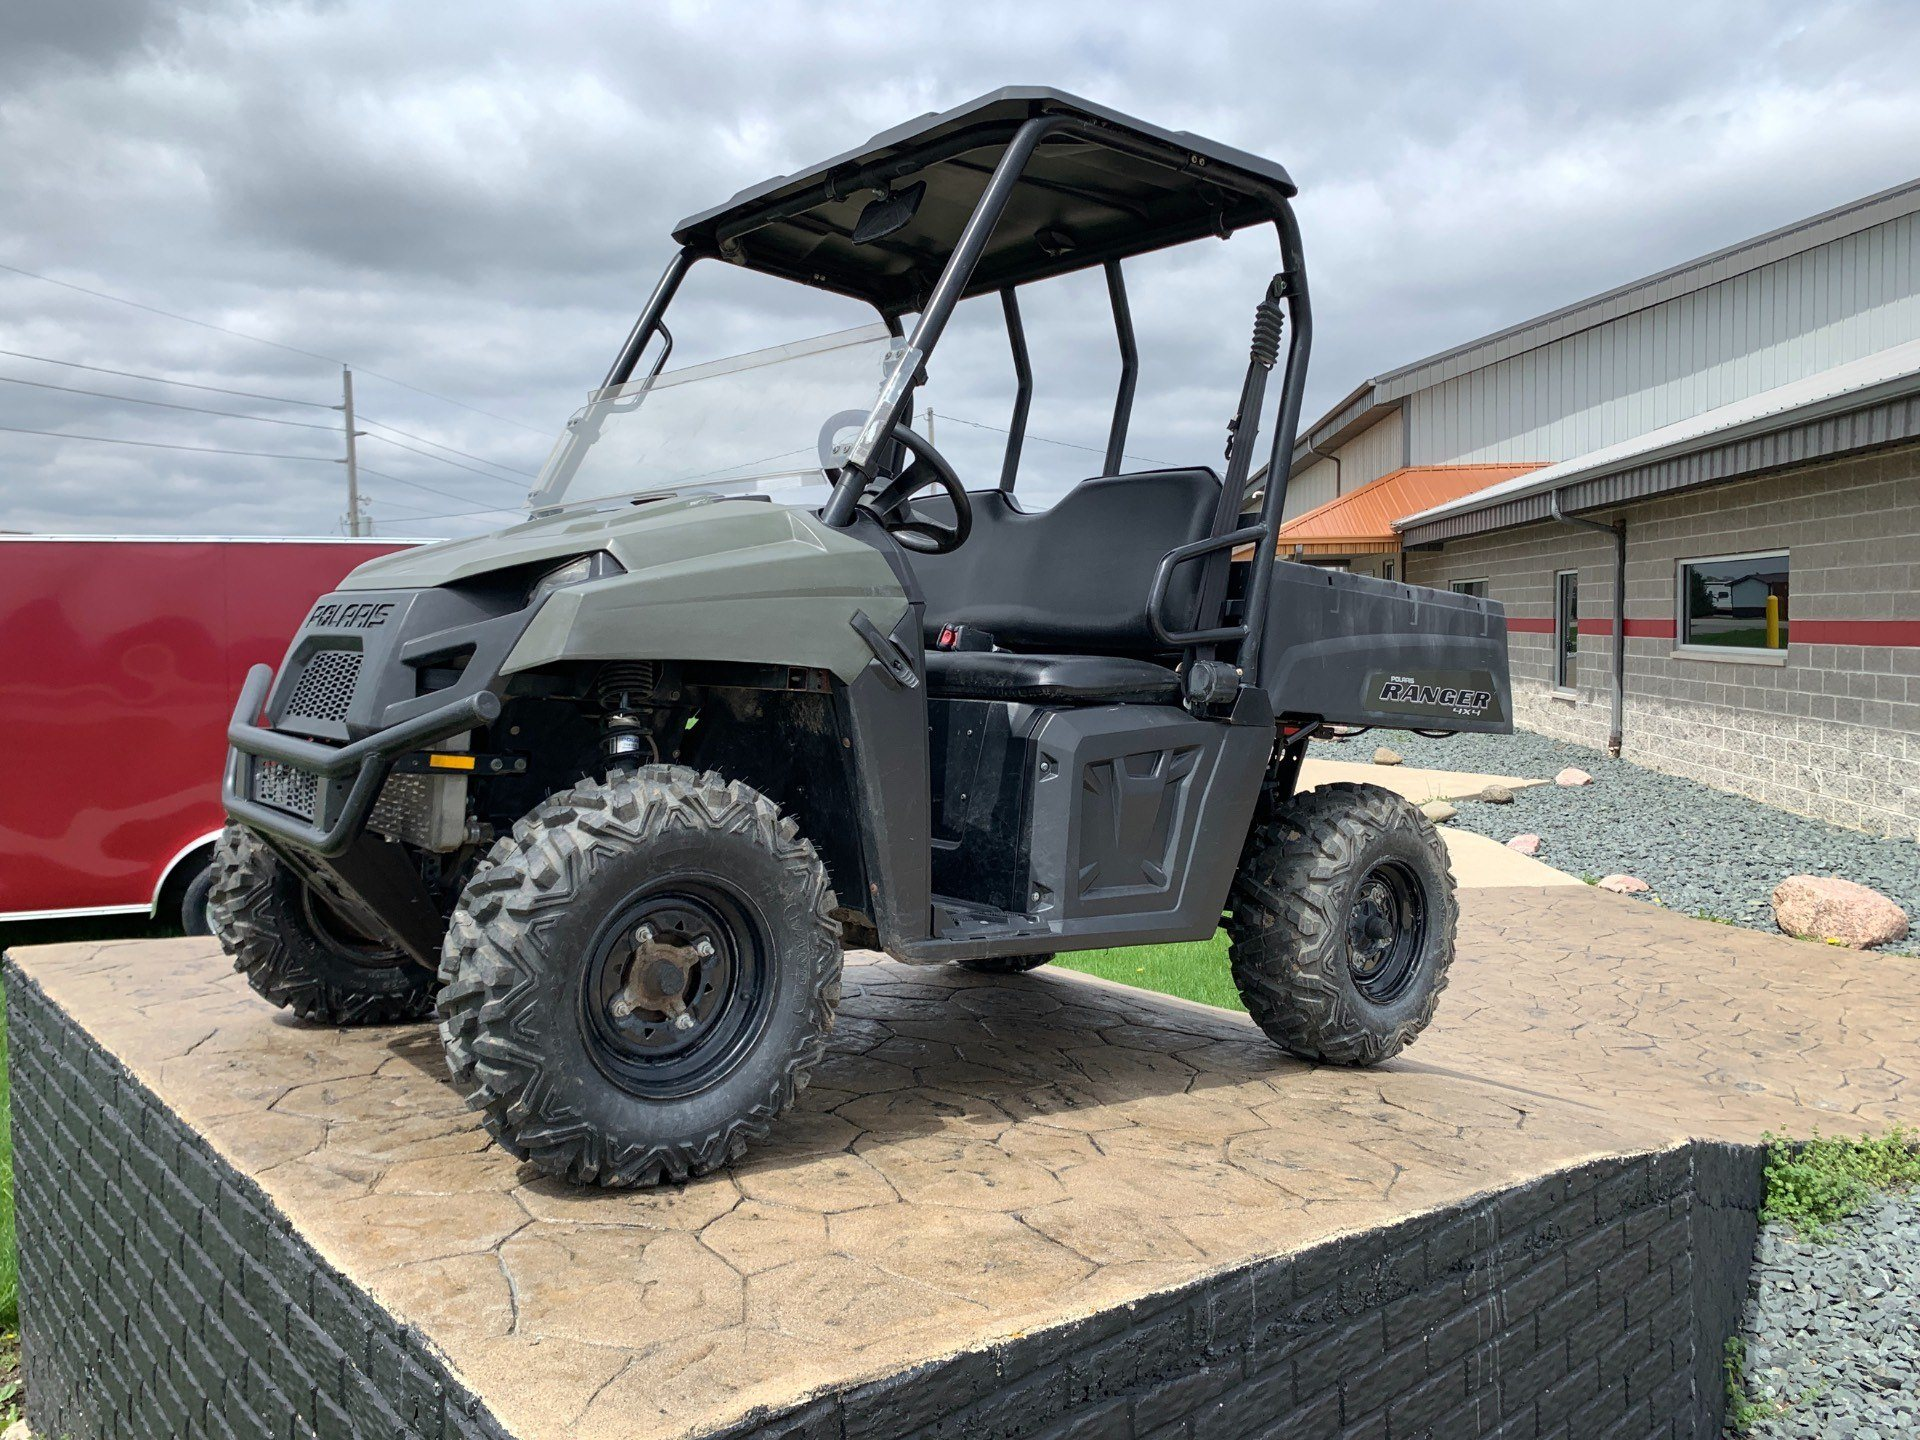 2013 Polaris Ranger® 500 EFI in Ottumwa, Iowa - Photo 3